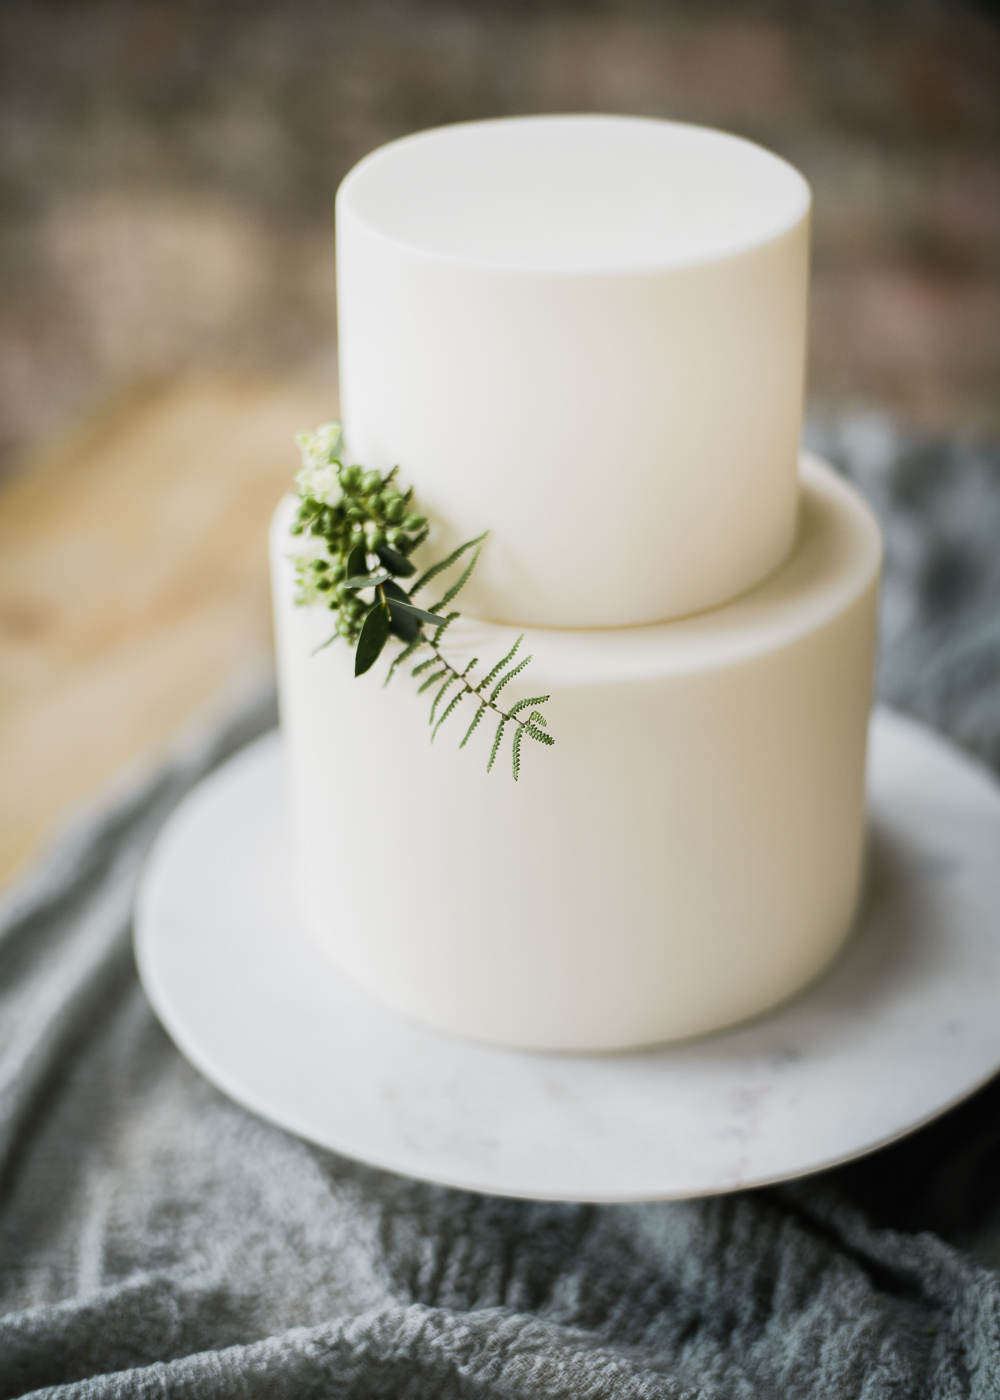 An elegant white wedding cake adorned with foliage.